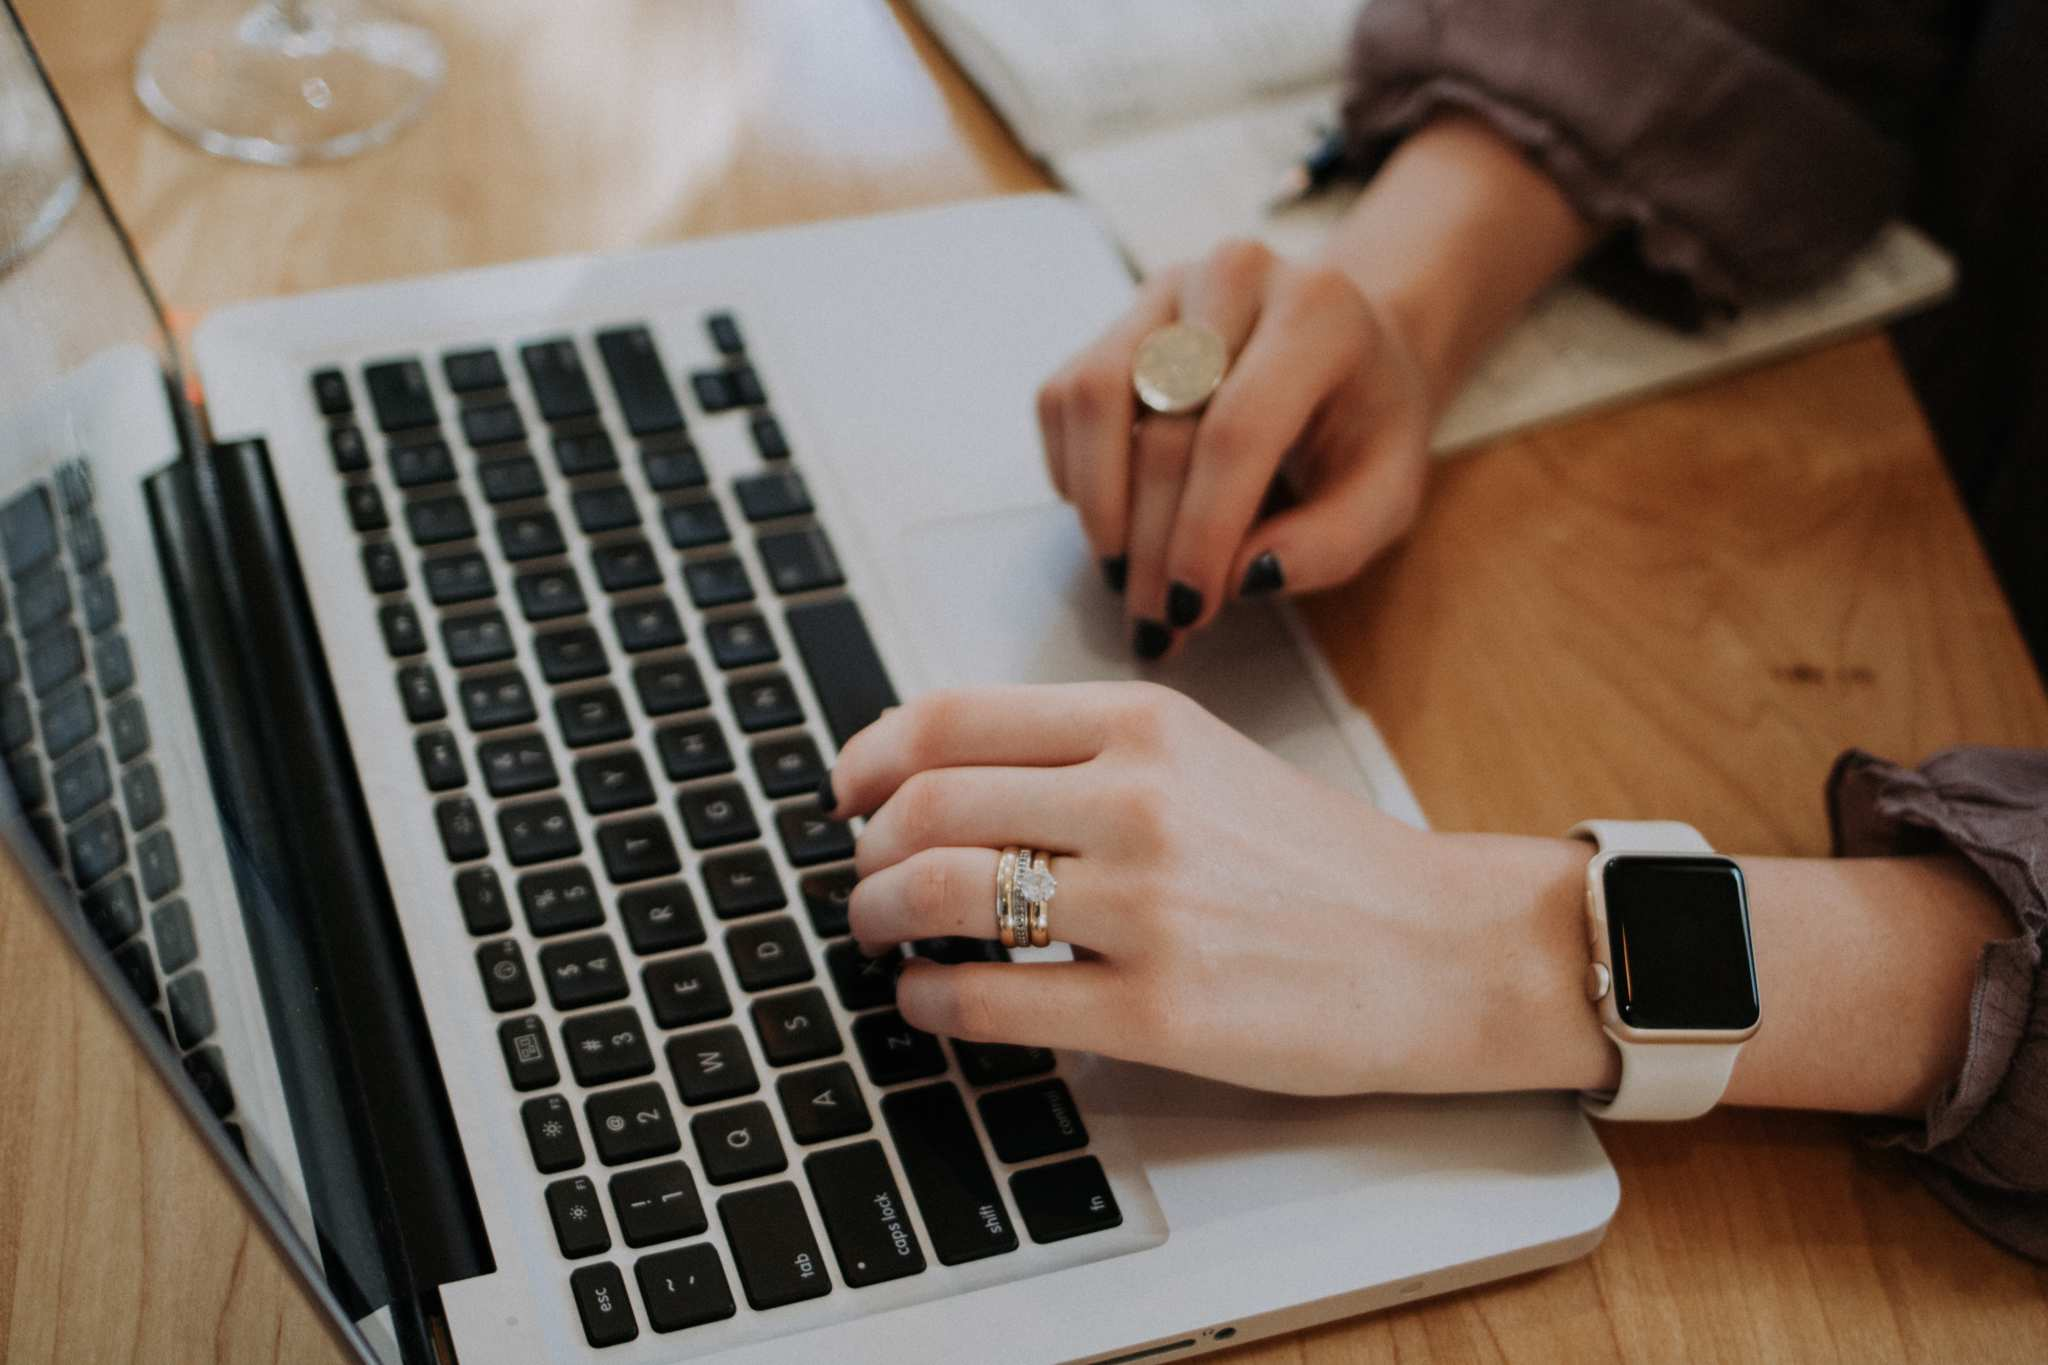 A woman in a watch and rings uses a laptop to shop online. Our Black Friday Hemp Guide brings together deals from 7 of Ministry of Hemp's favorite hemp brands.